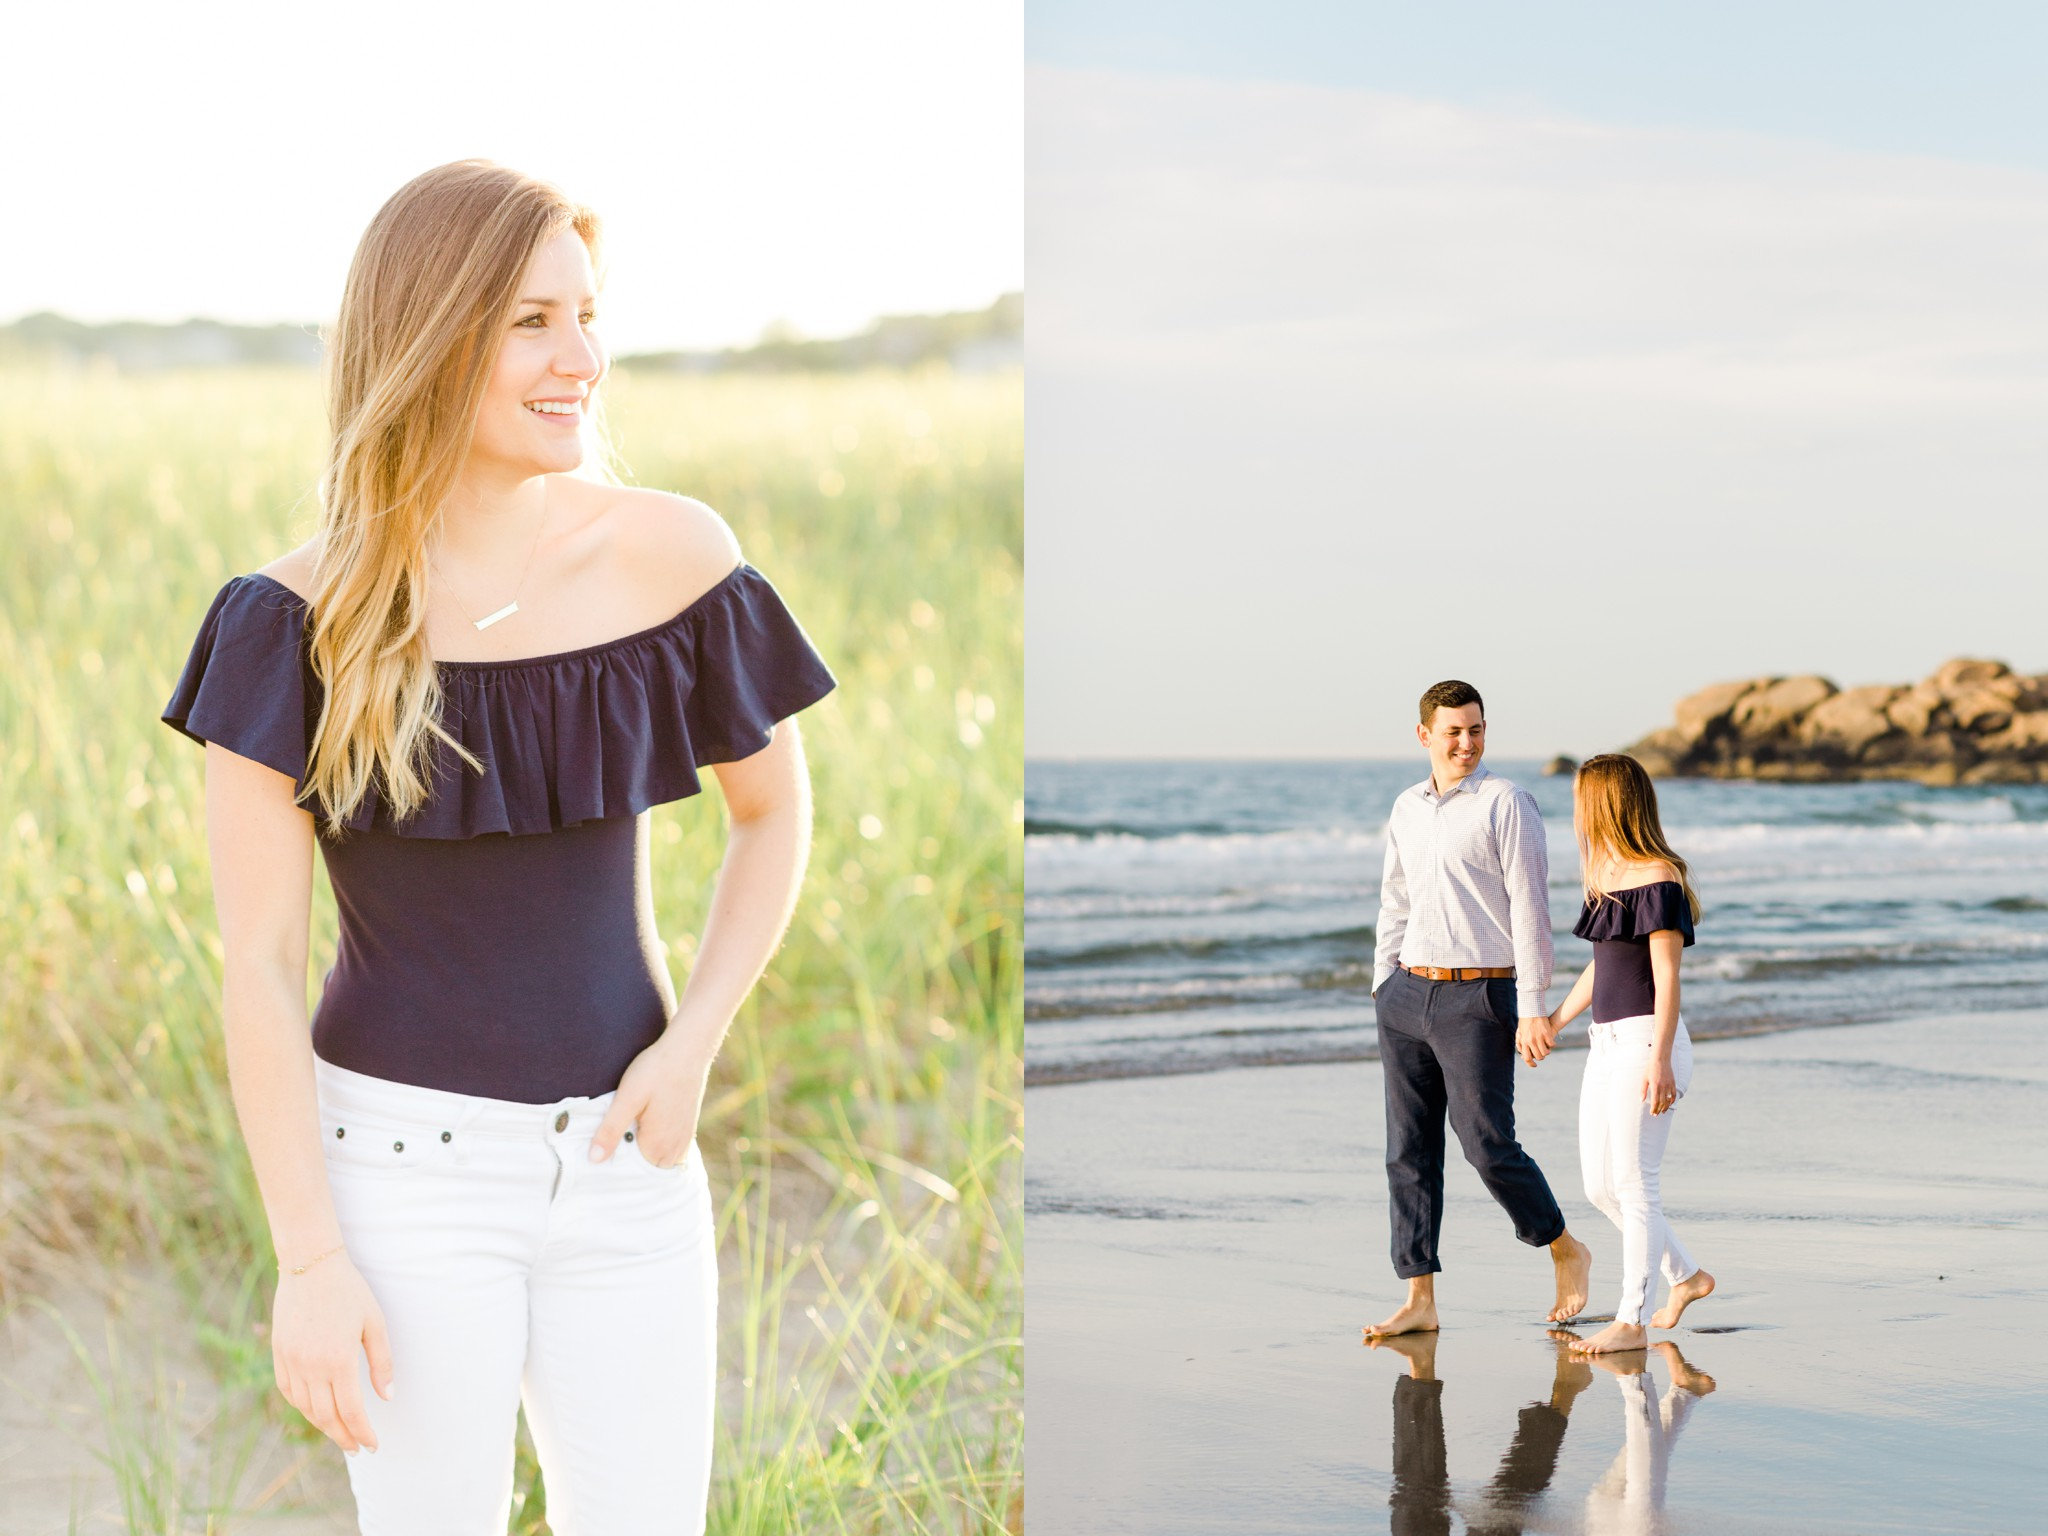 deborah_zoe_photography_engagement_session_0109.JPG